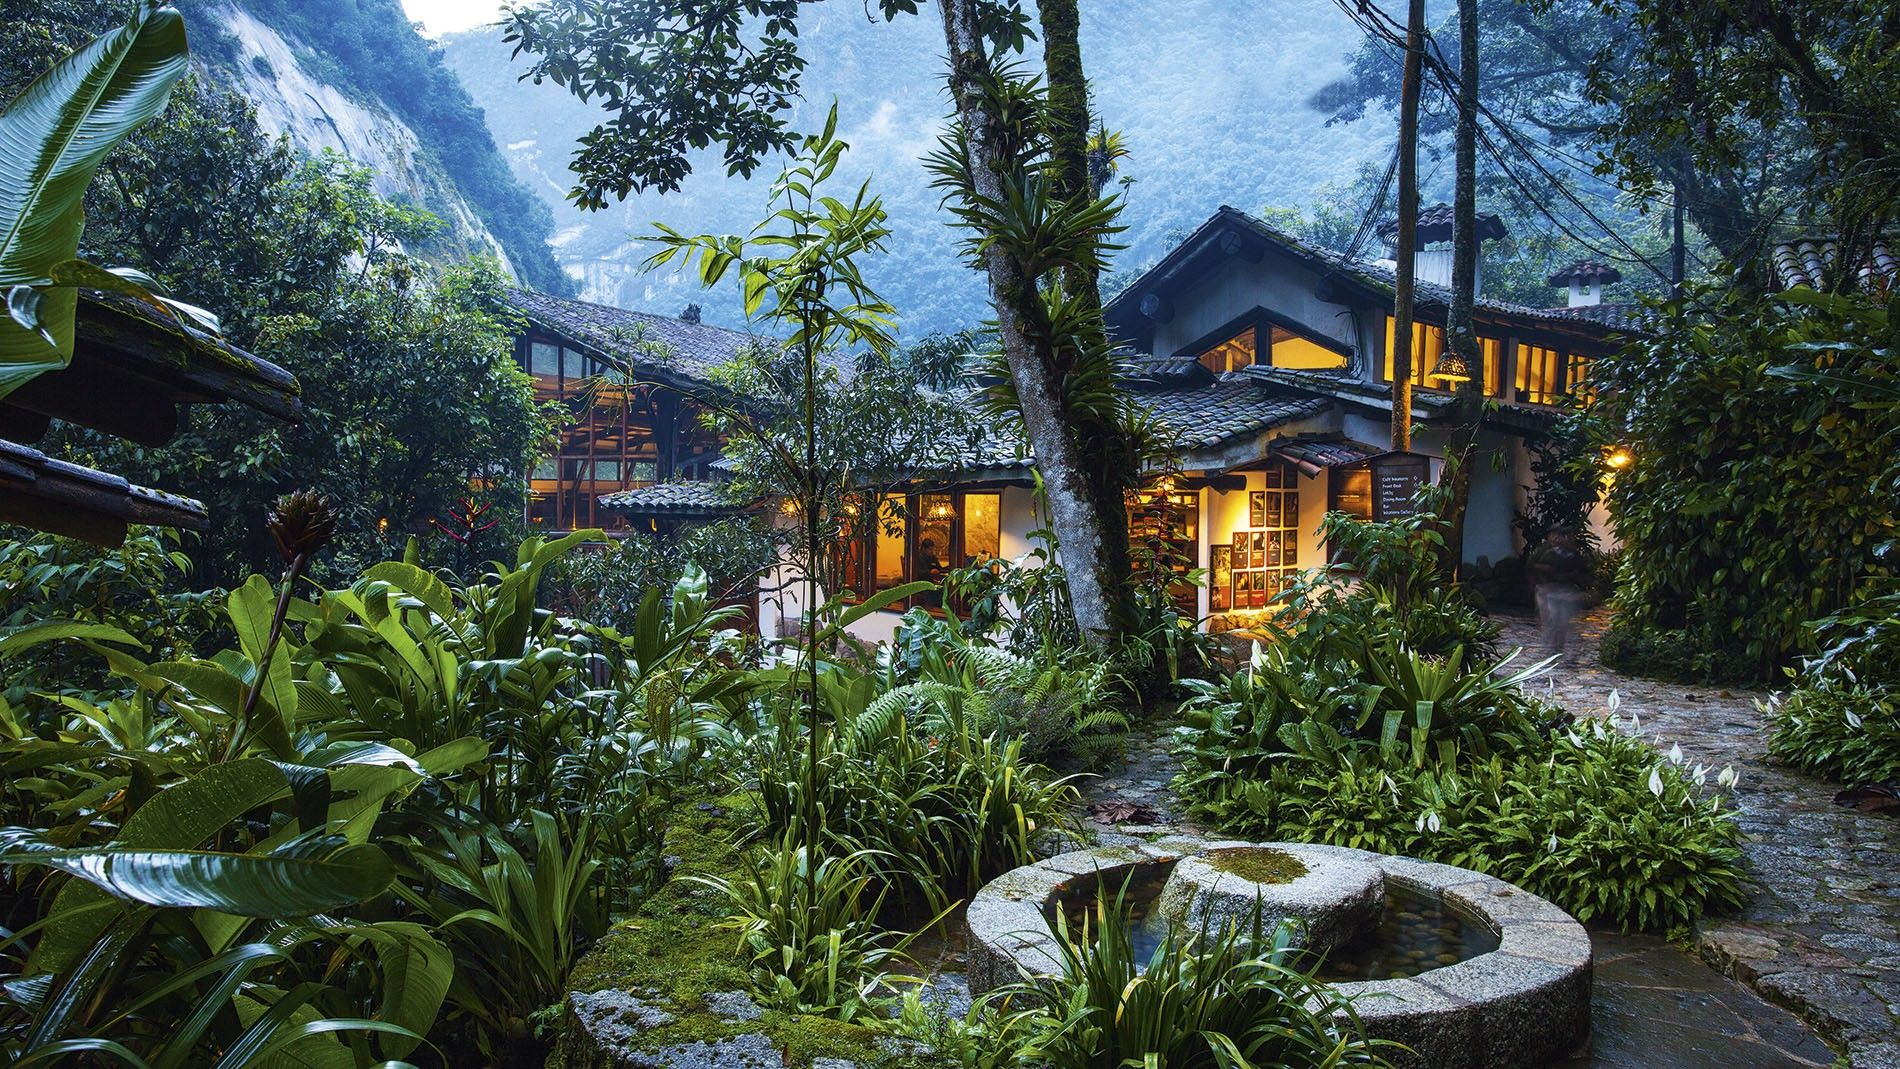 Inkaterra Machu Picchu Pueblo Hotel, Peru. In April, the hotel donated an organic waste treatment plant to the city in which it sits to turn organic waste into fertiliser used to aid reforesting the Andean Cloud Forest and Machu Picchu.